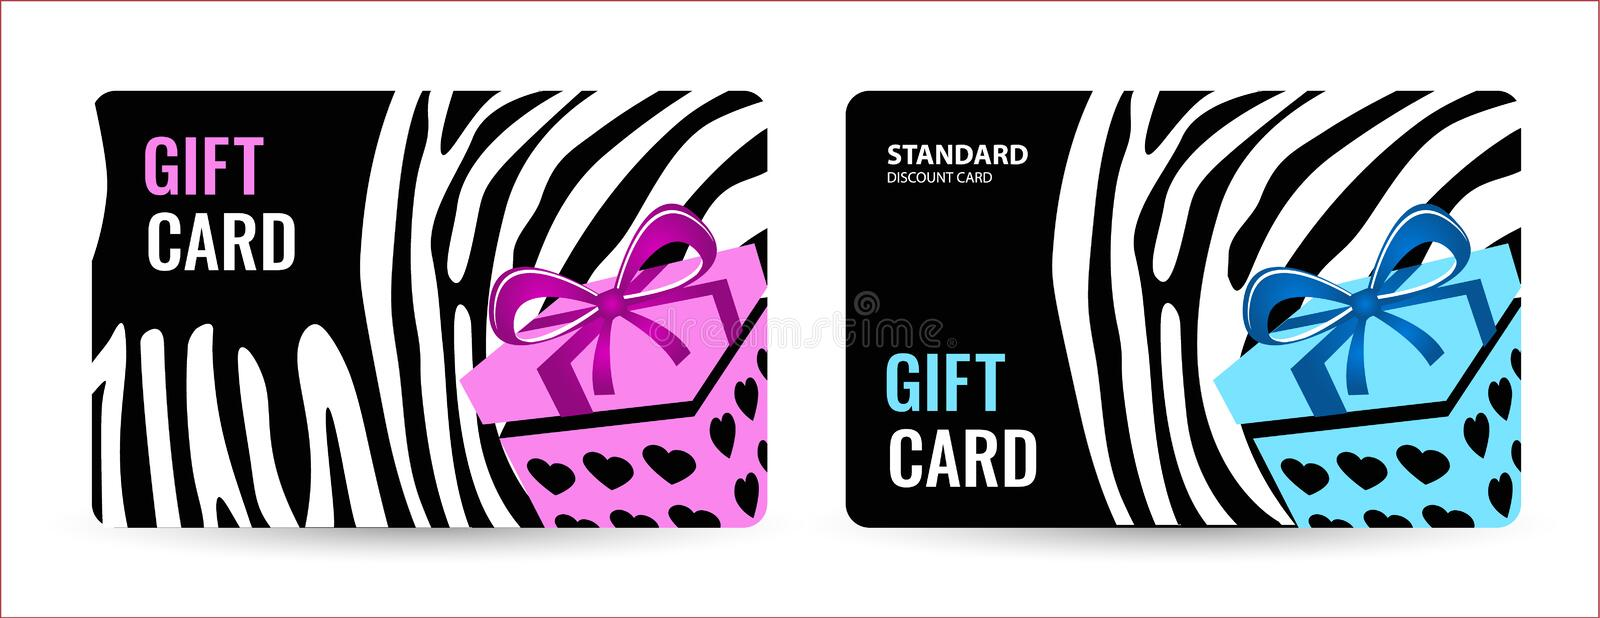 Bright card with black and white stripes and pink box. Creative Gift card. royalty free illustration